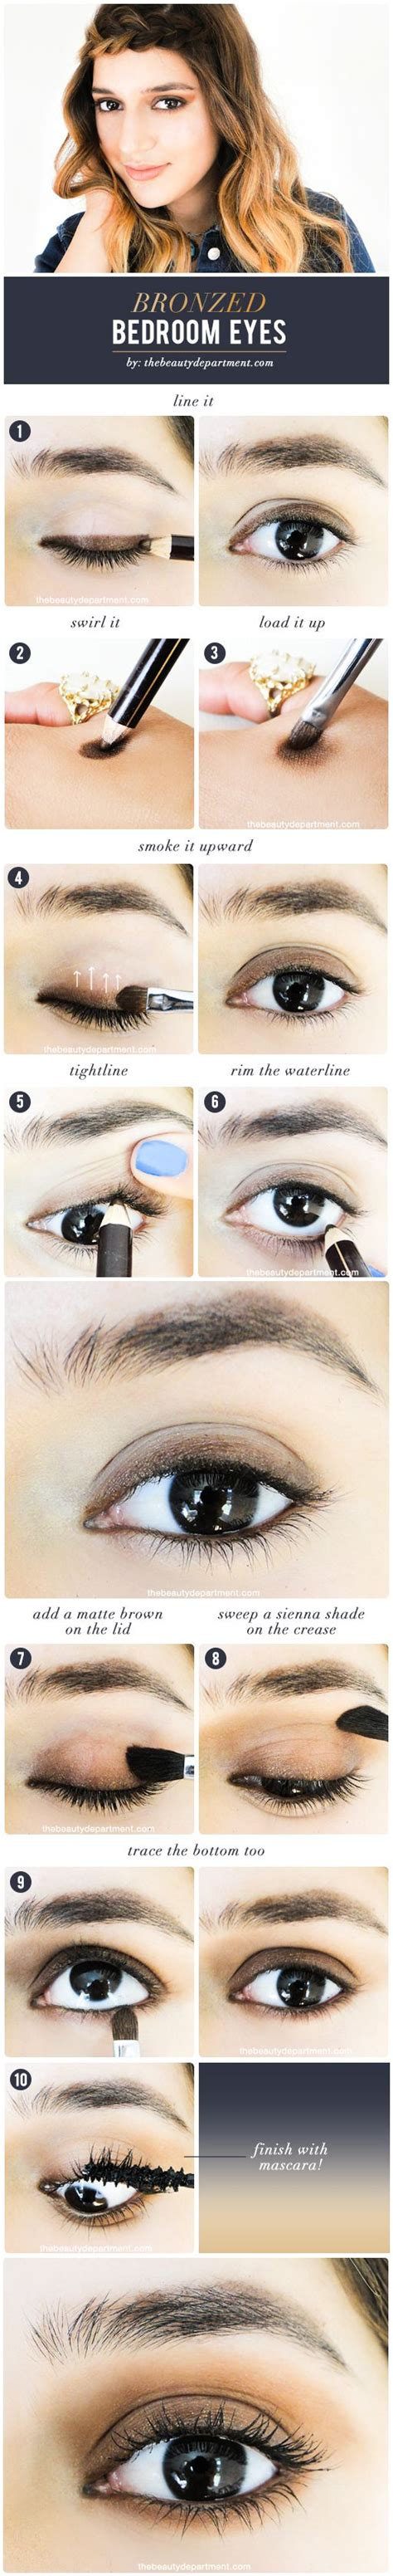 bedroom eyes makeup 25 best ideas about news today on pinterest tech news